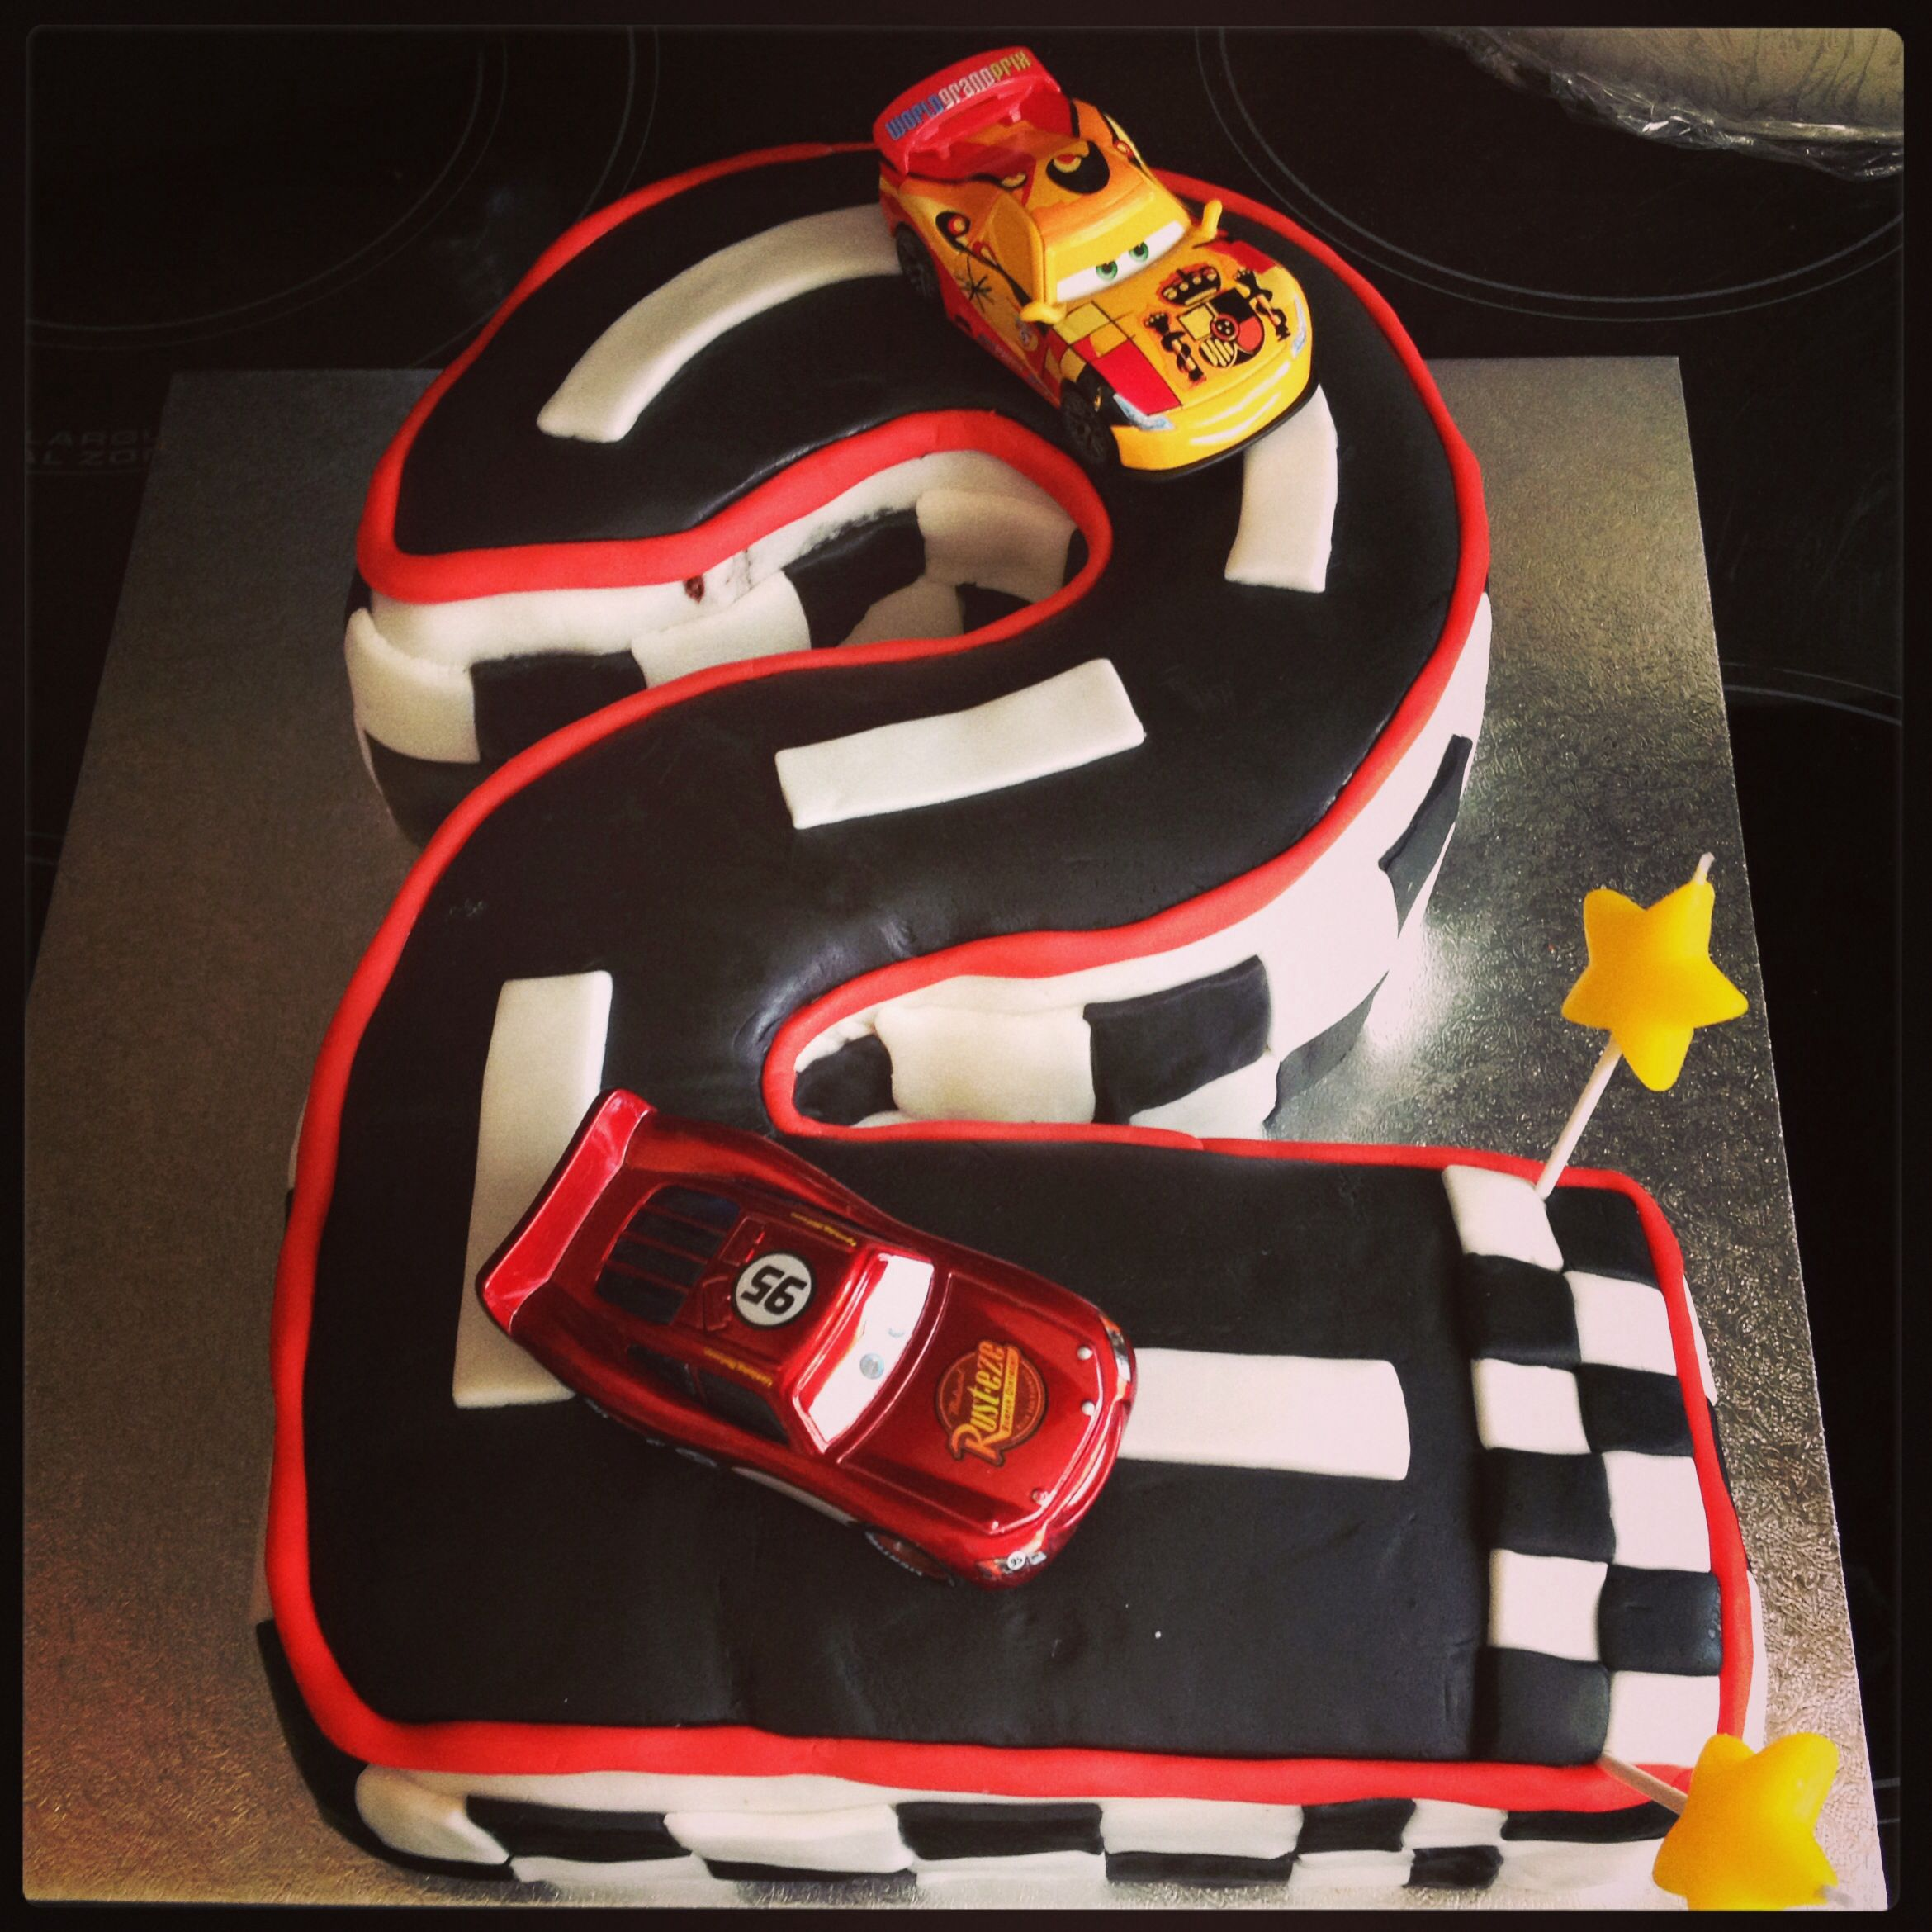 Disney Cars Number  Birthday Cake Liams Rd Birthday Party - Birthday cake cars 2